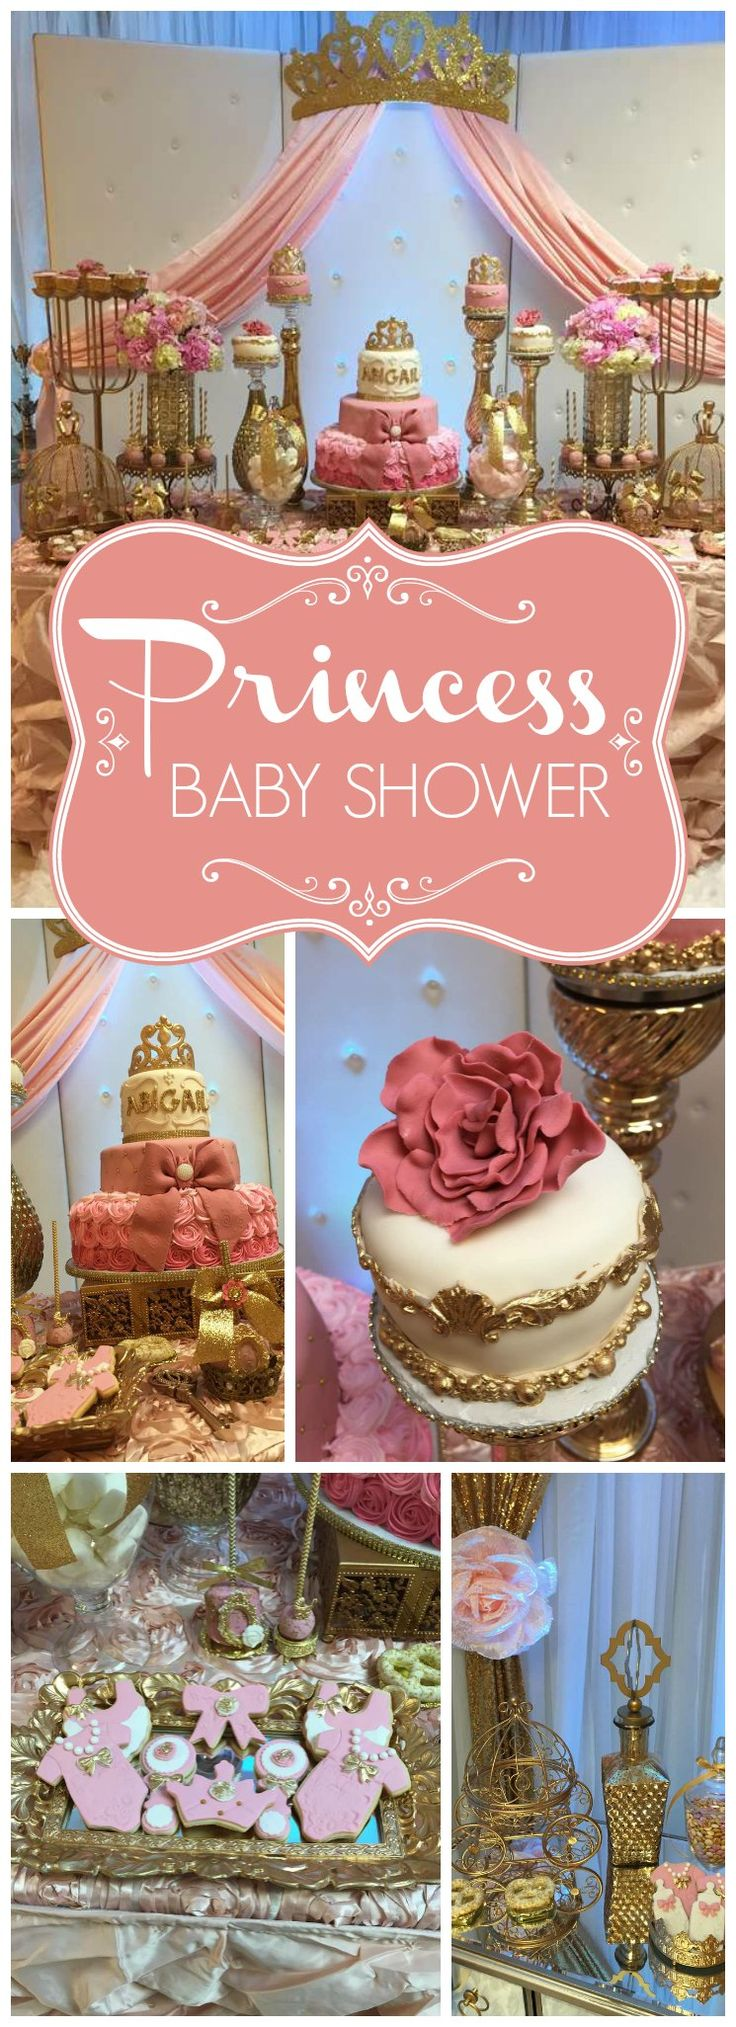 25 best ideas about baby shower themes on pinterest baby showers